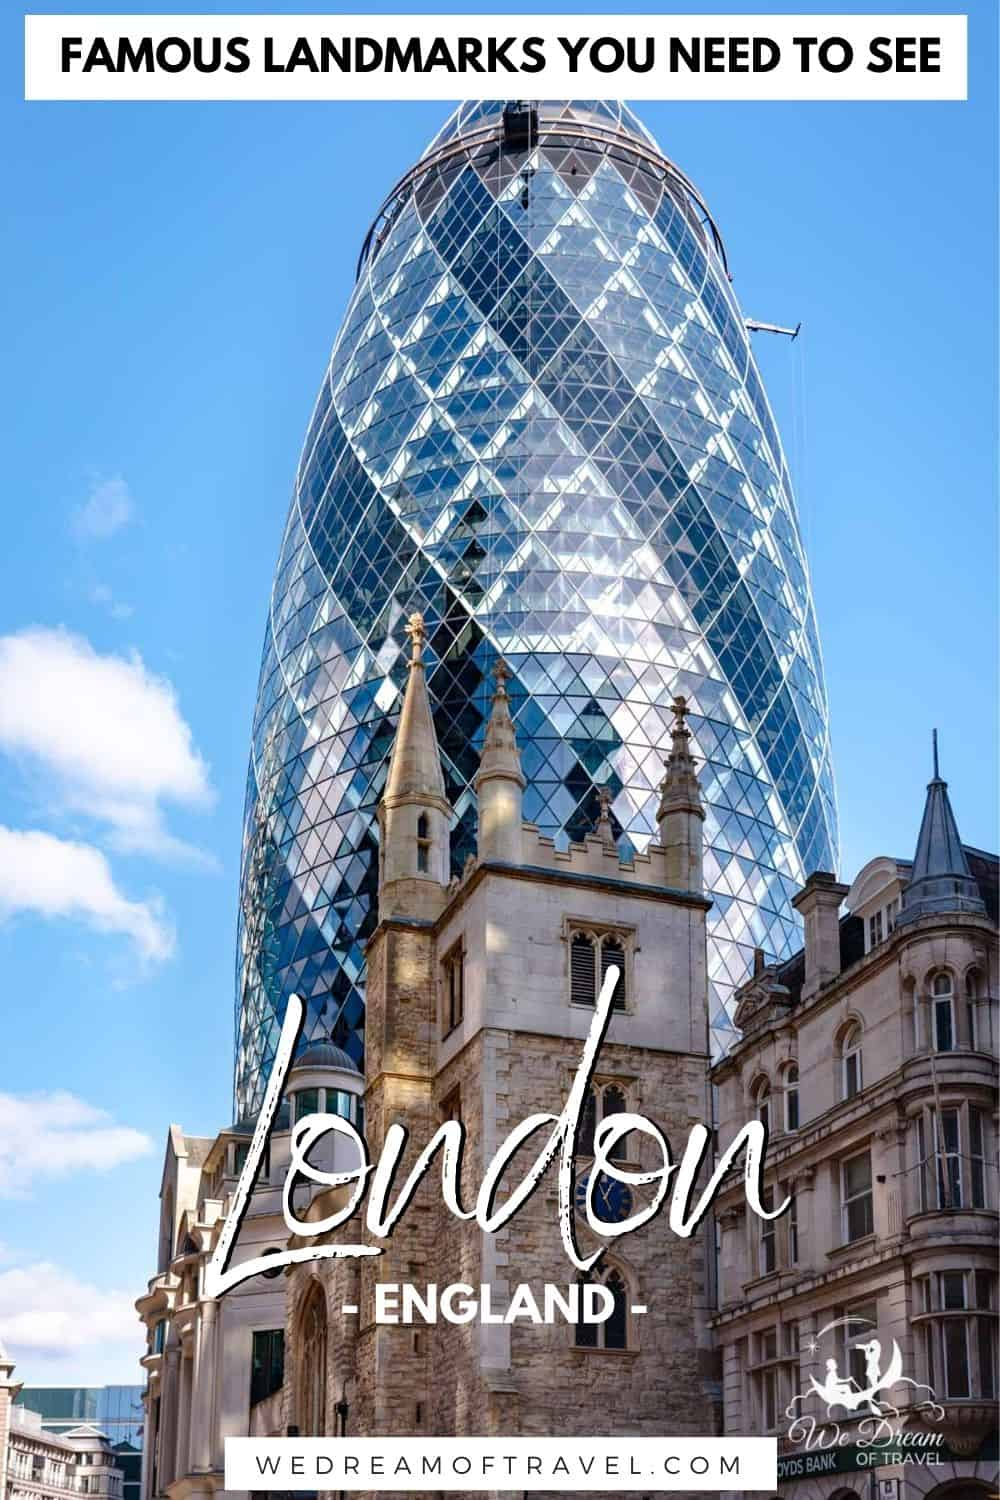 Planning a London vacation?  Discover all the best London landmarks to visit from a local.  From the historical Tower of London to the regal Buckingham Palace, iconic Big Ben and modern behemoth the Shard, this London travel guide will help you find all the best landmarks in London to see.  London Landmarks | Landmarks in London | Things to do in London | London Travel